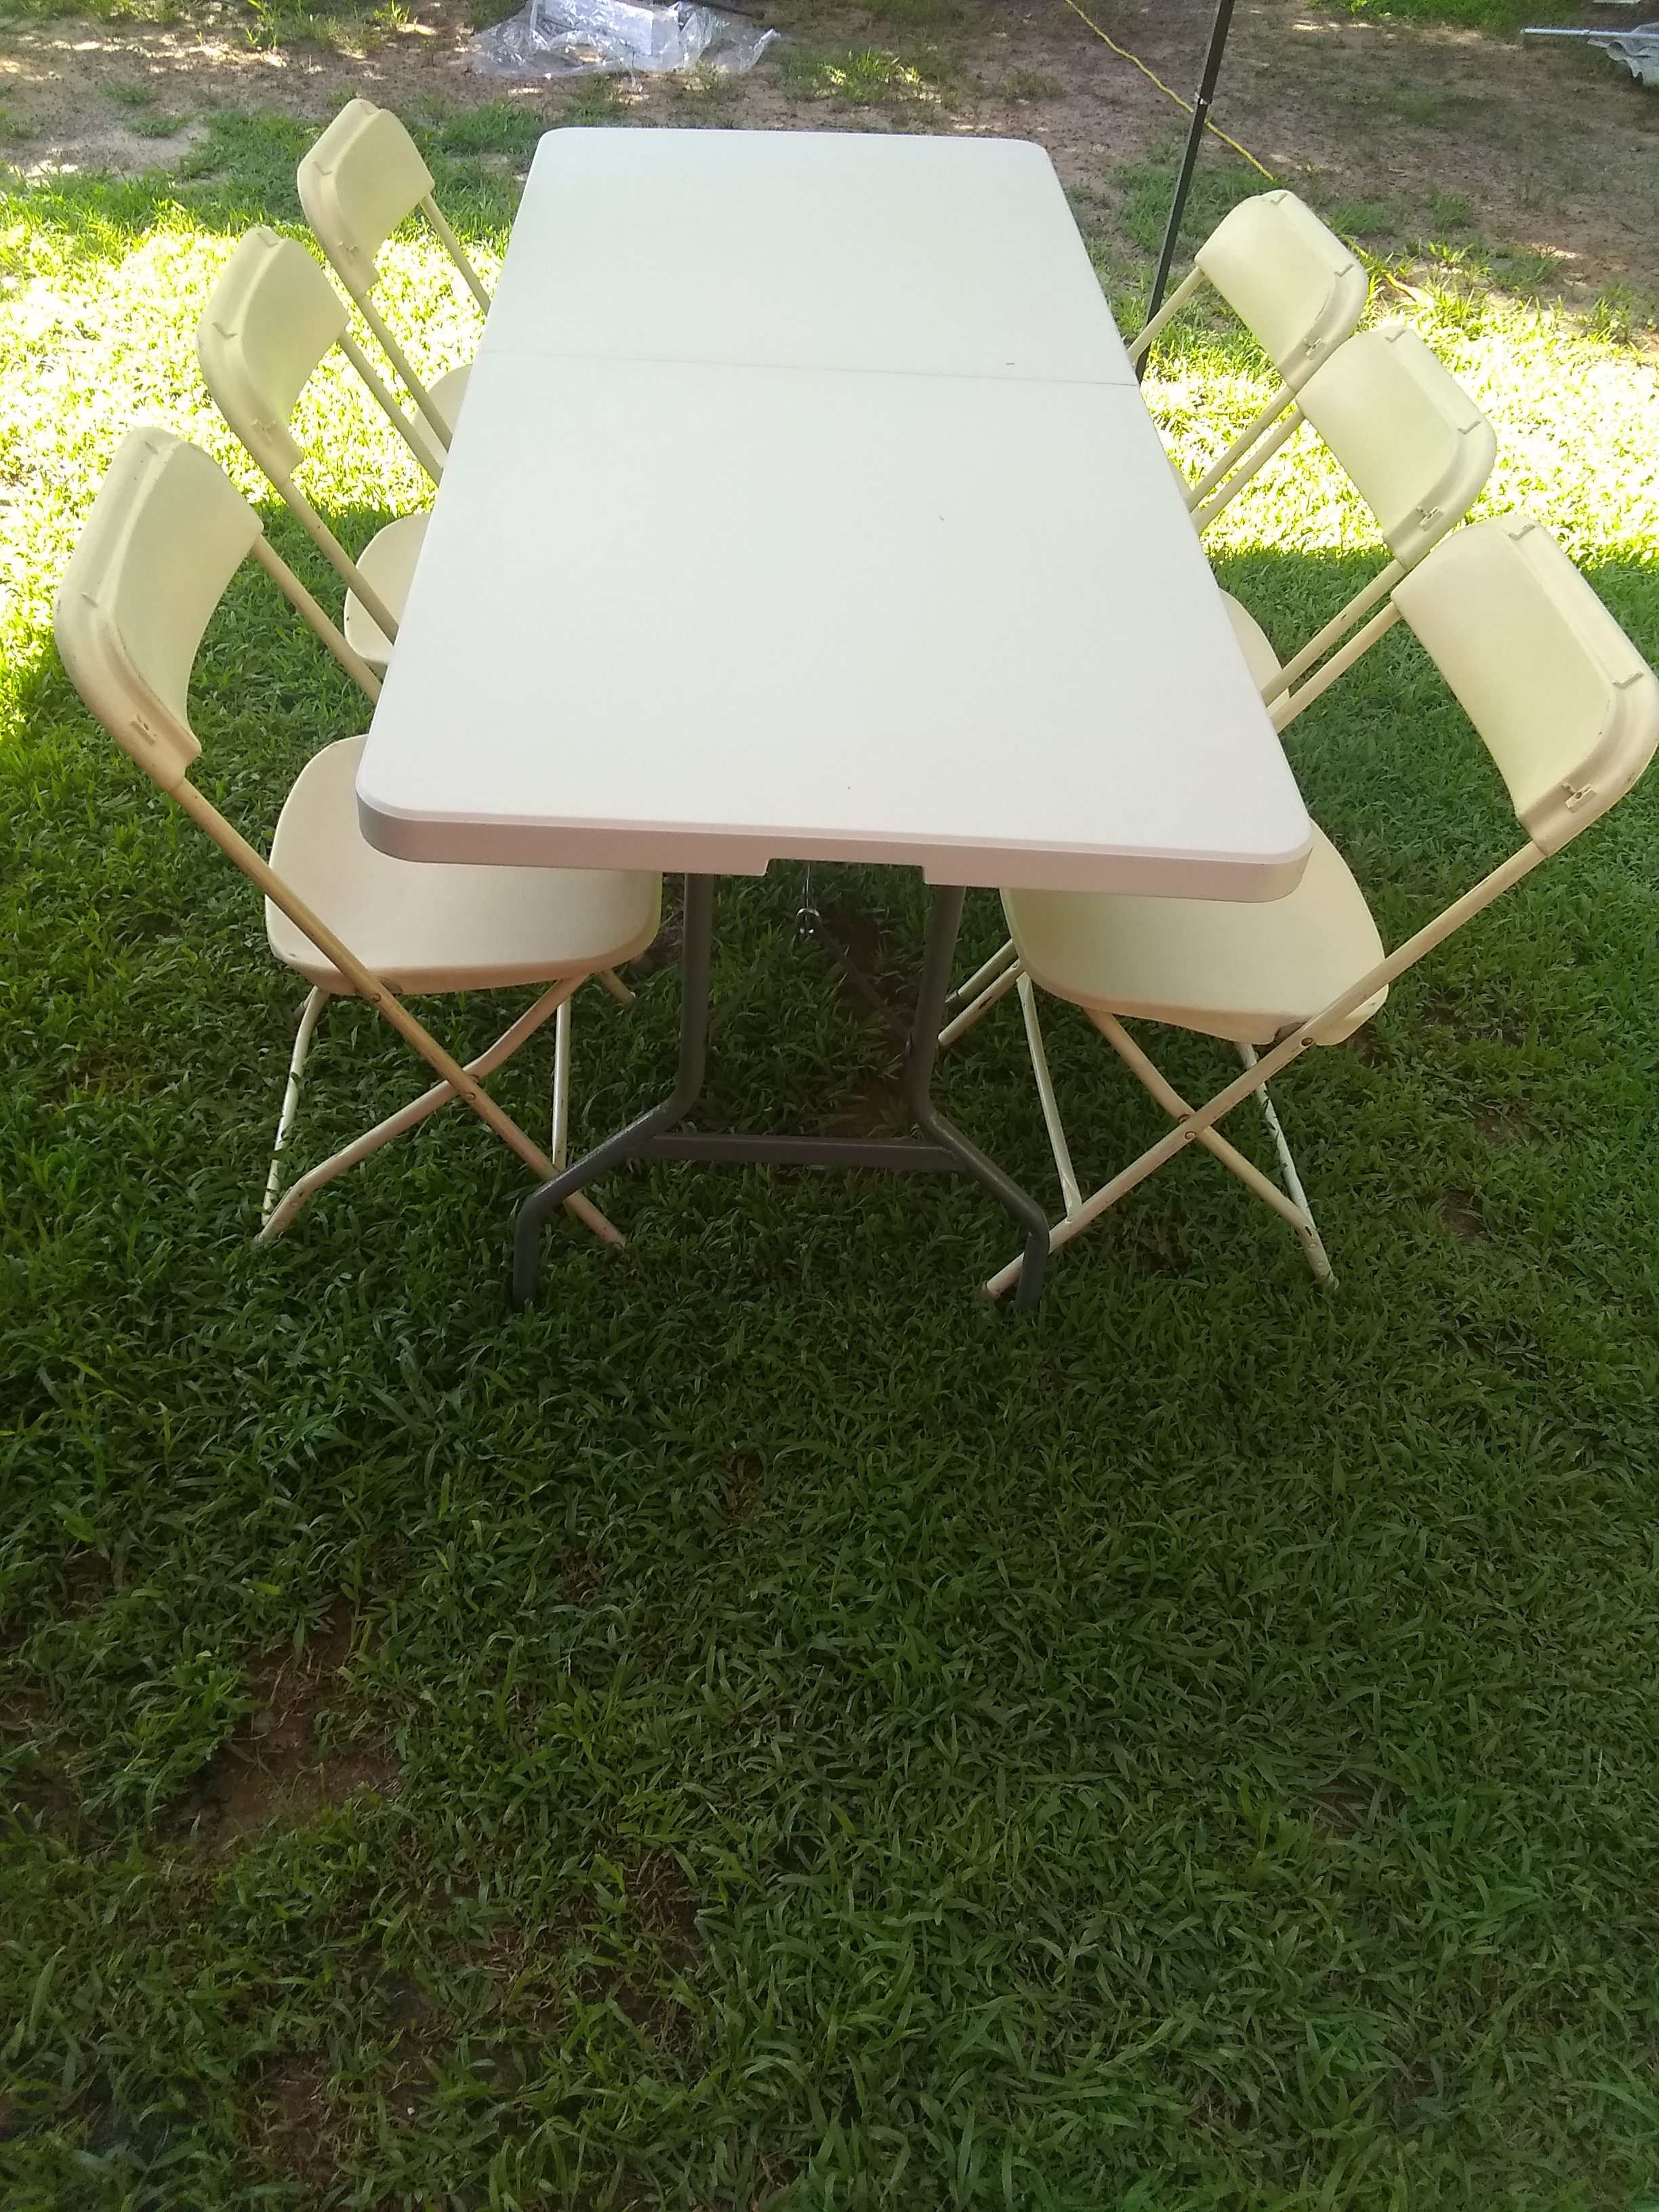 8 PERSON TABLE